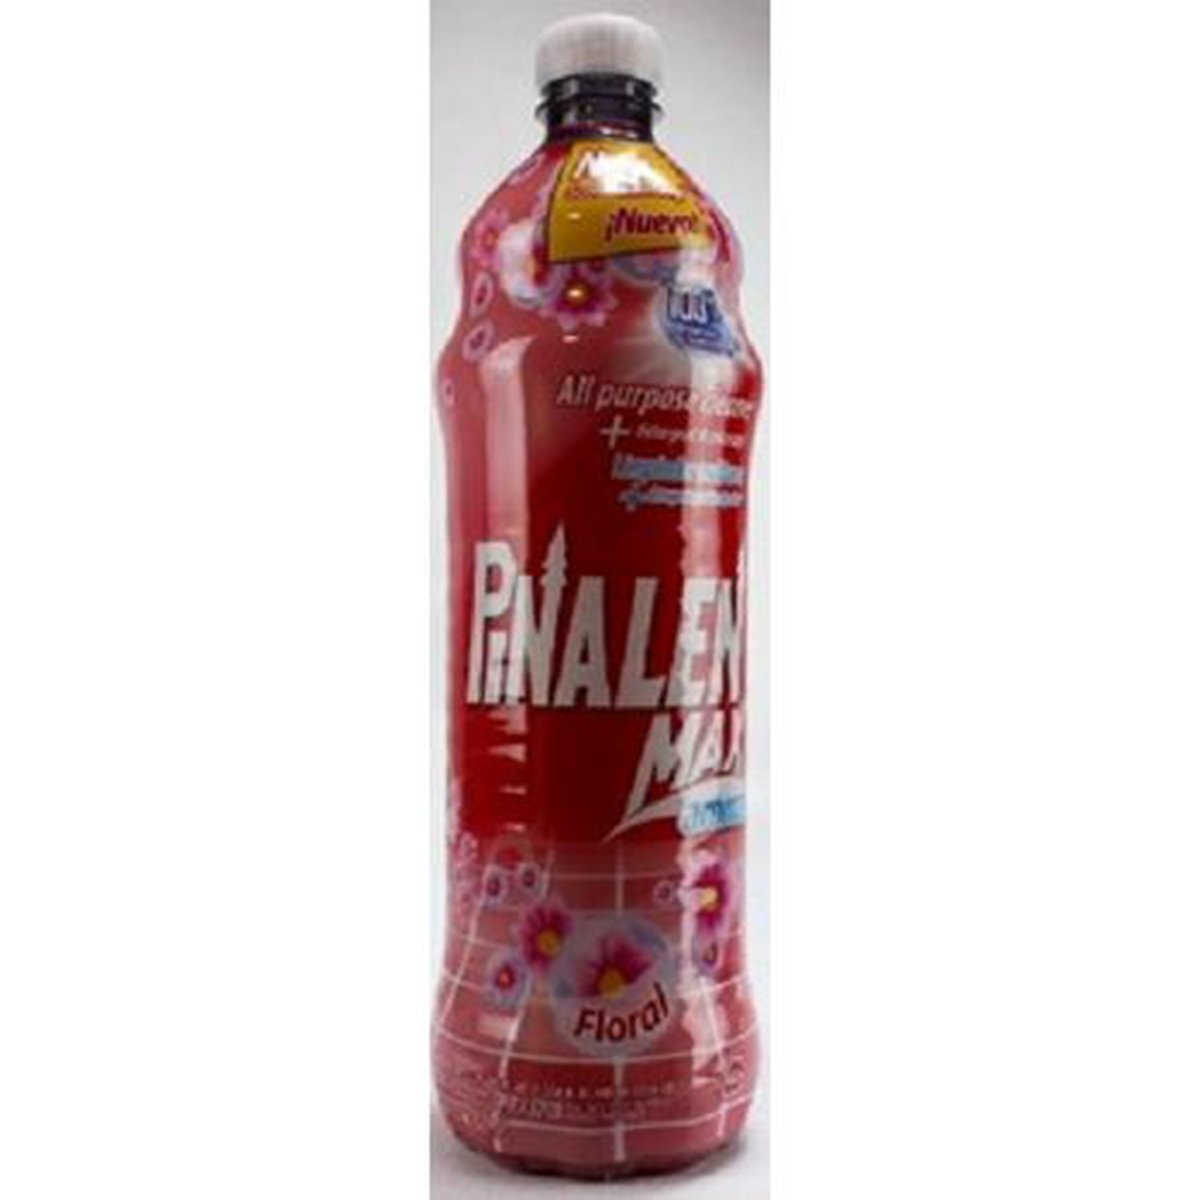 Pinalen Max Multi Purpose Cleaner Floral, 1 Count (BATHROOM CLEANER)